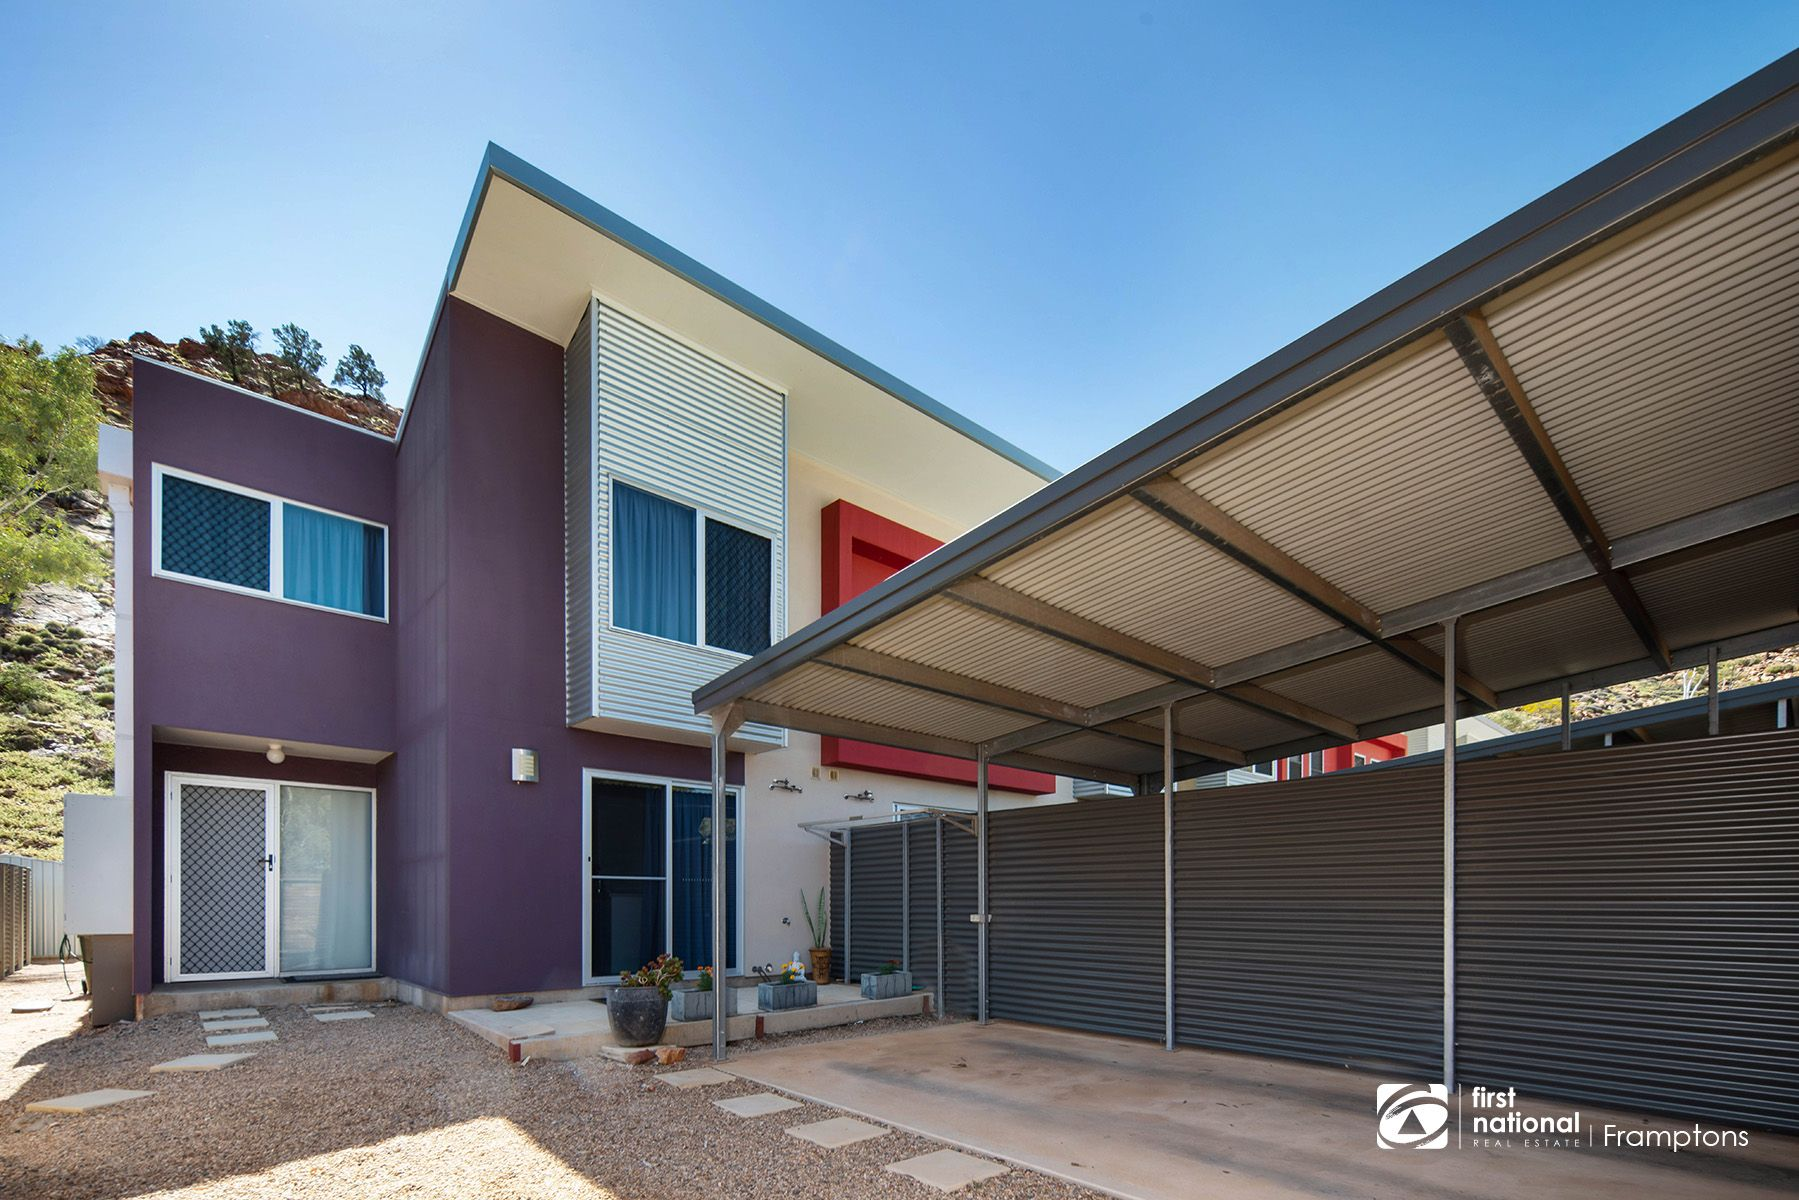 21/70 Palm Circuit, Ross, NT 0873